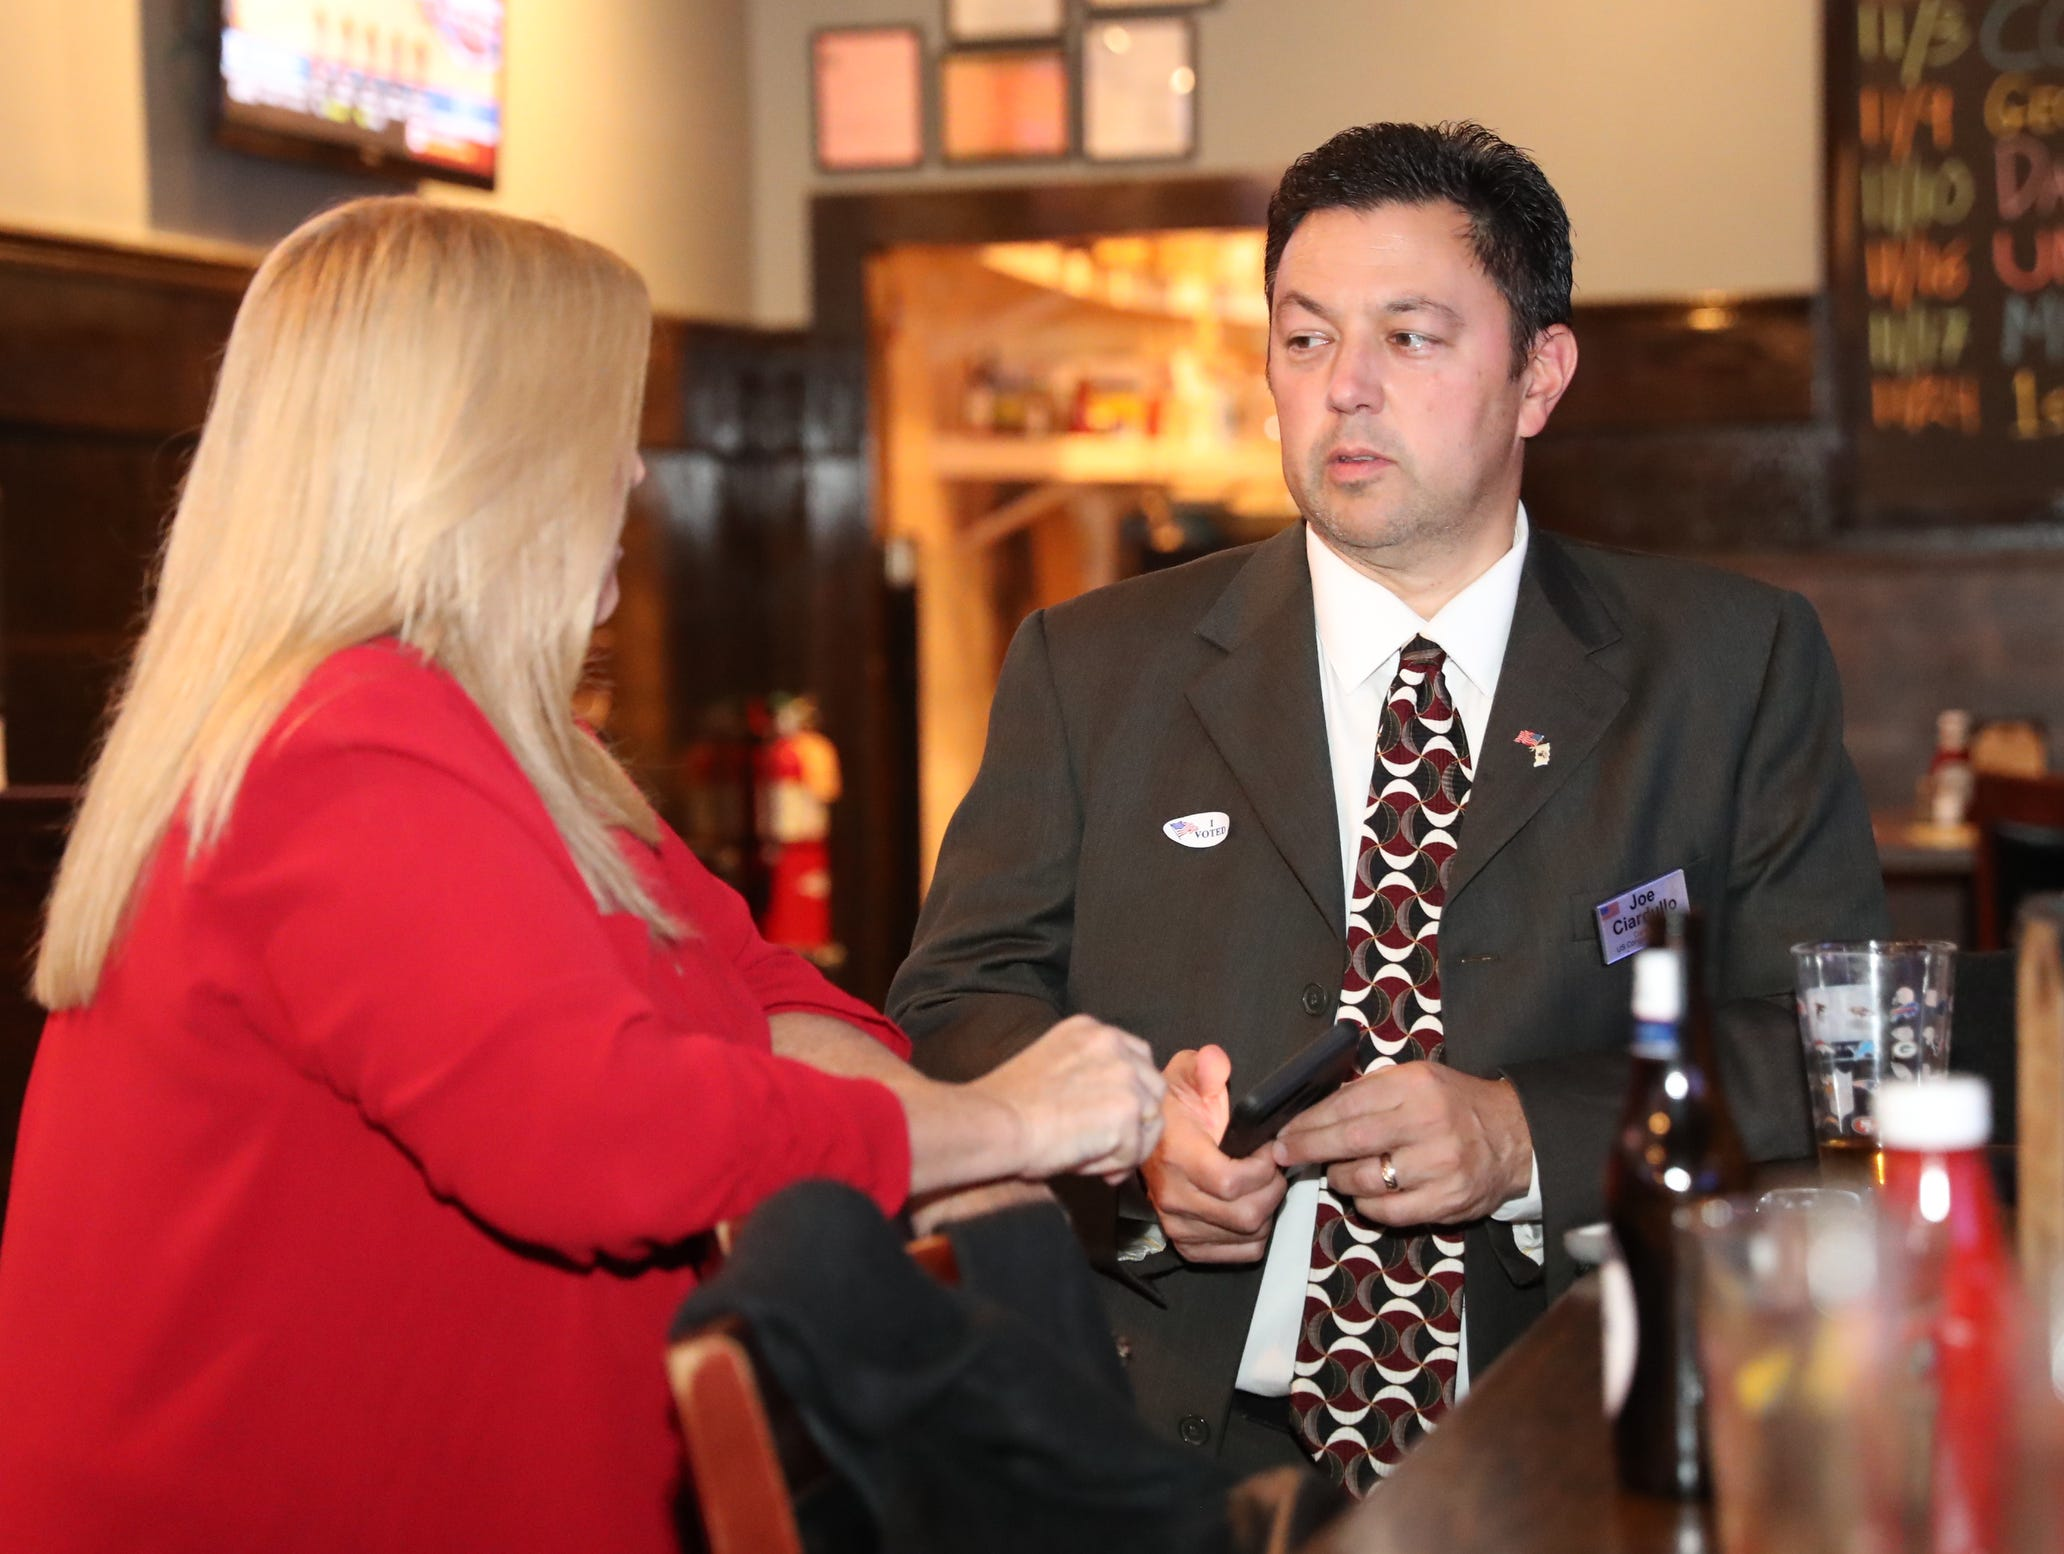 Joe Ciardullo, right, candidate for NY's 17th Congresional District at the Rockland Republican Commitee's election night gathering at Foggy Bottom Tavern in New City on Tuesday, November 6, 2018.